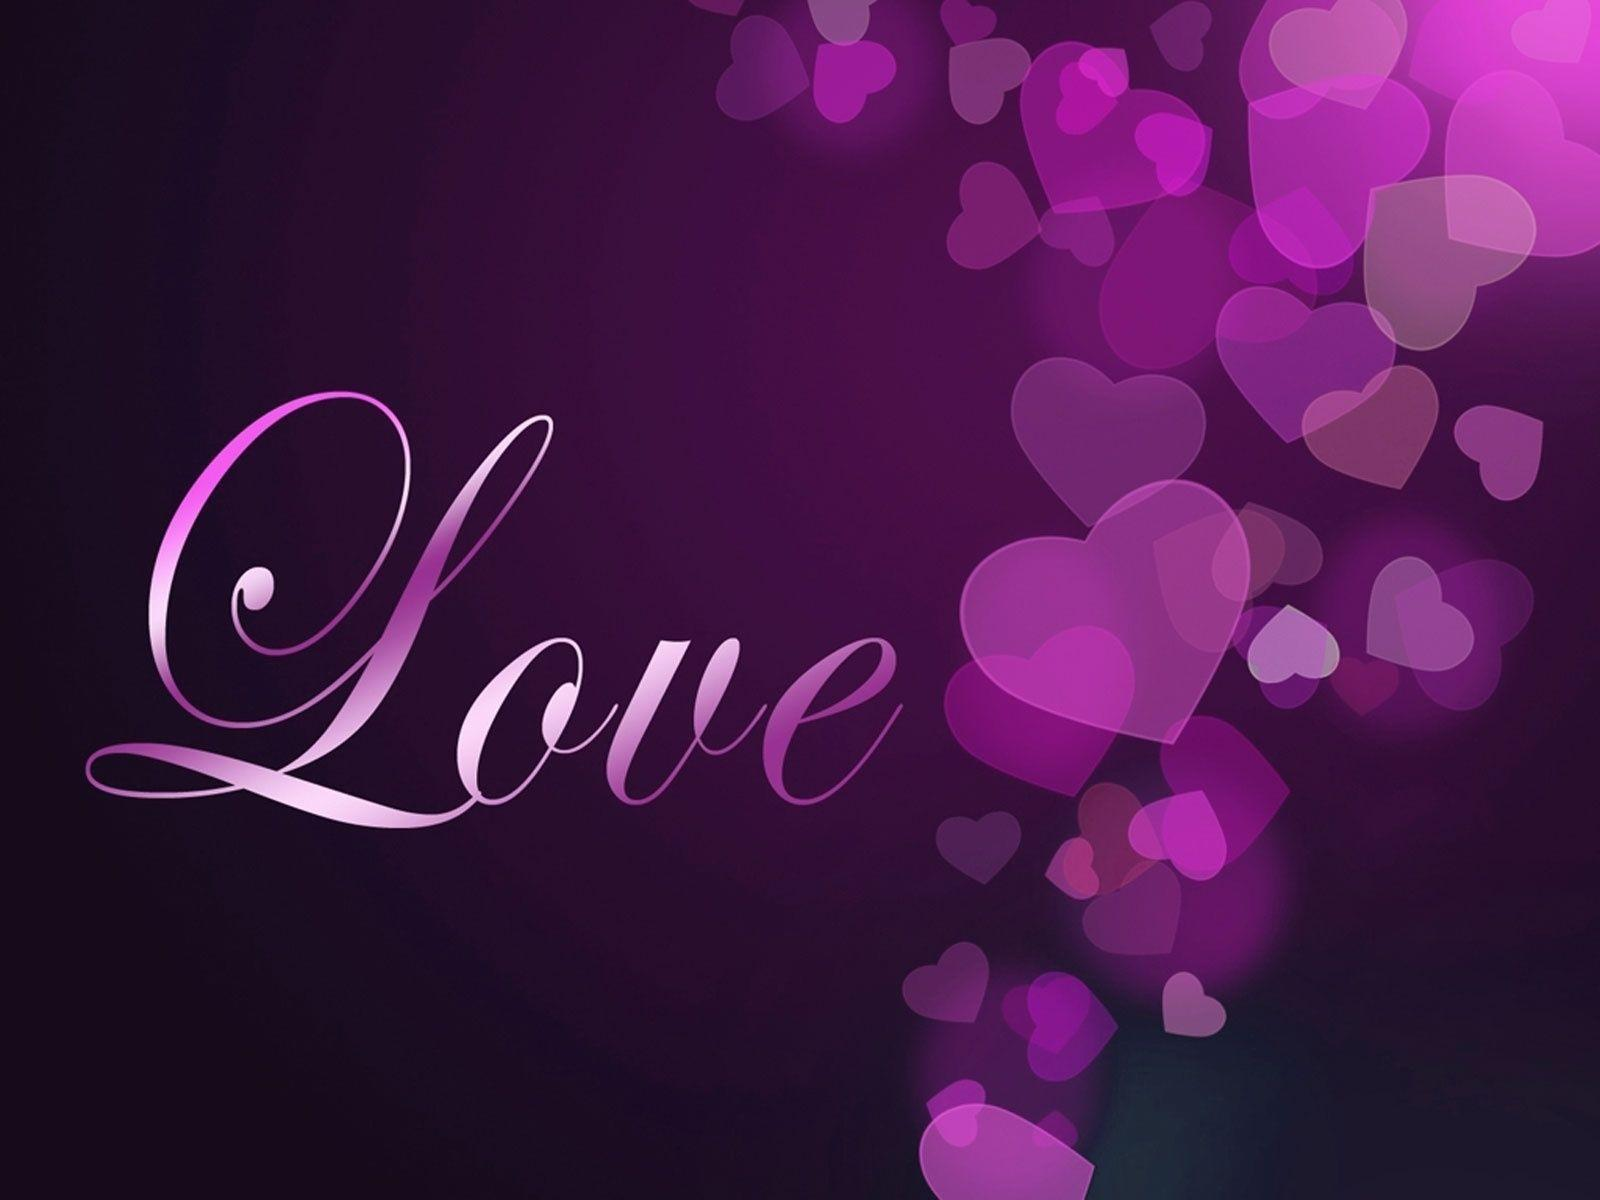 Love Wallpapers Set : Purple Heart Wallpapers - Wallpaper cave